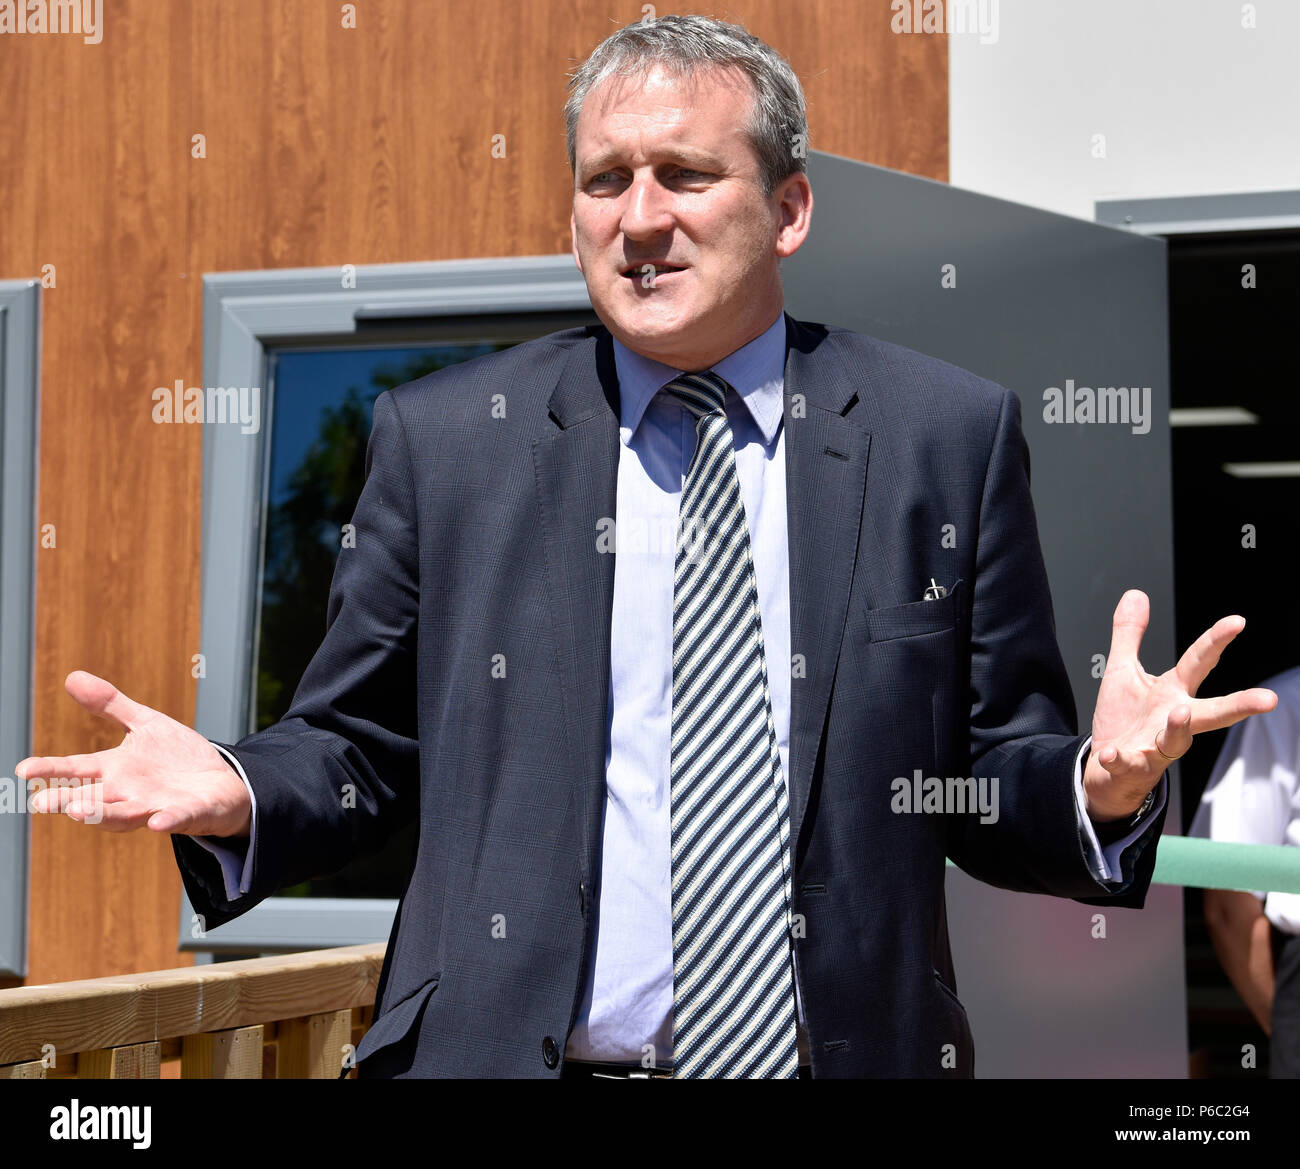 Damian Hinds, Conservative MP for East Hampshire and Secretary of State for Education, speaking at the opening of a new school refectory, Alton, Hamps - Stock Image